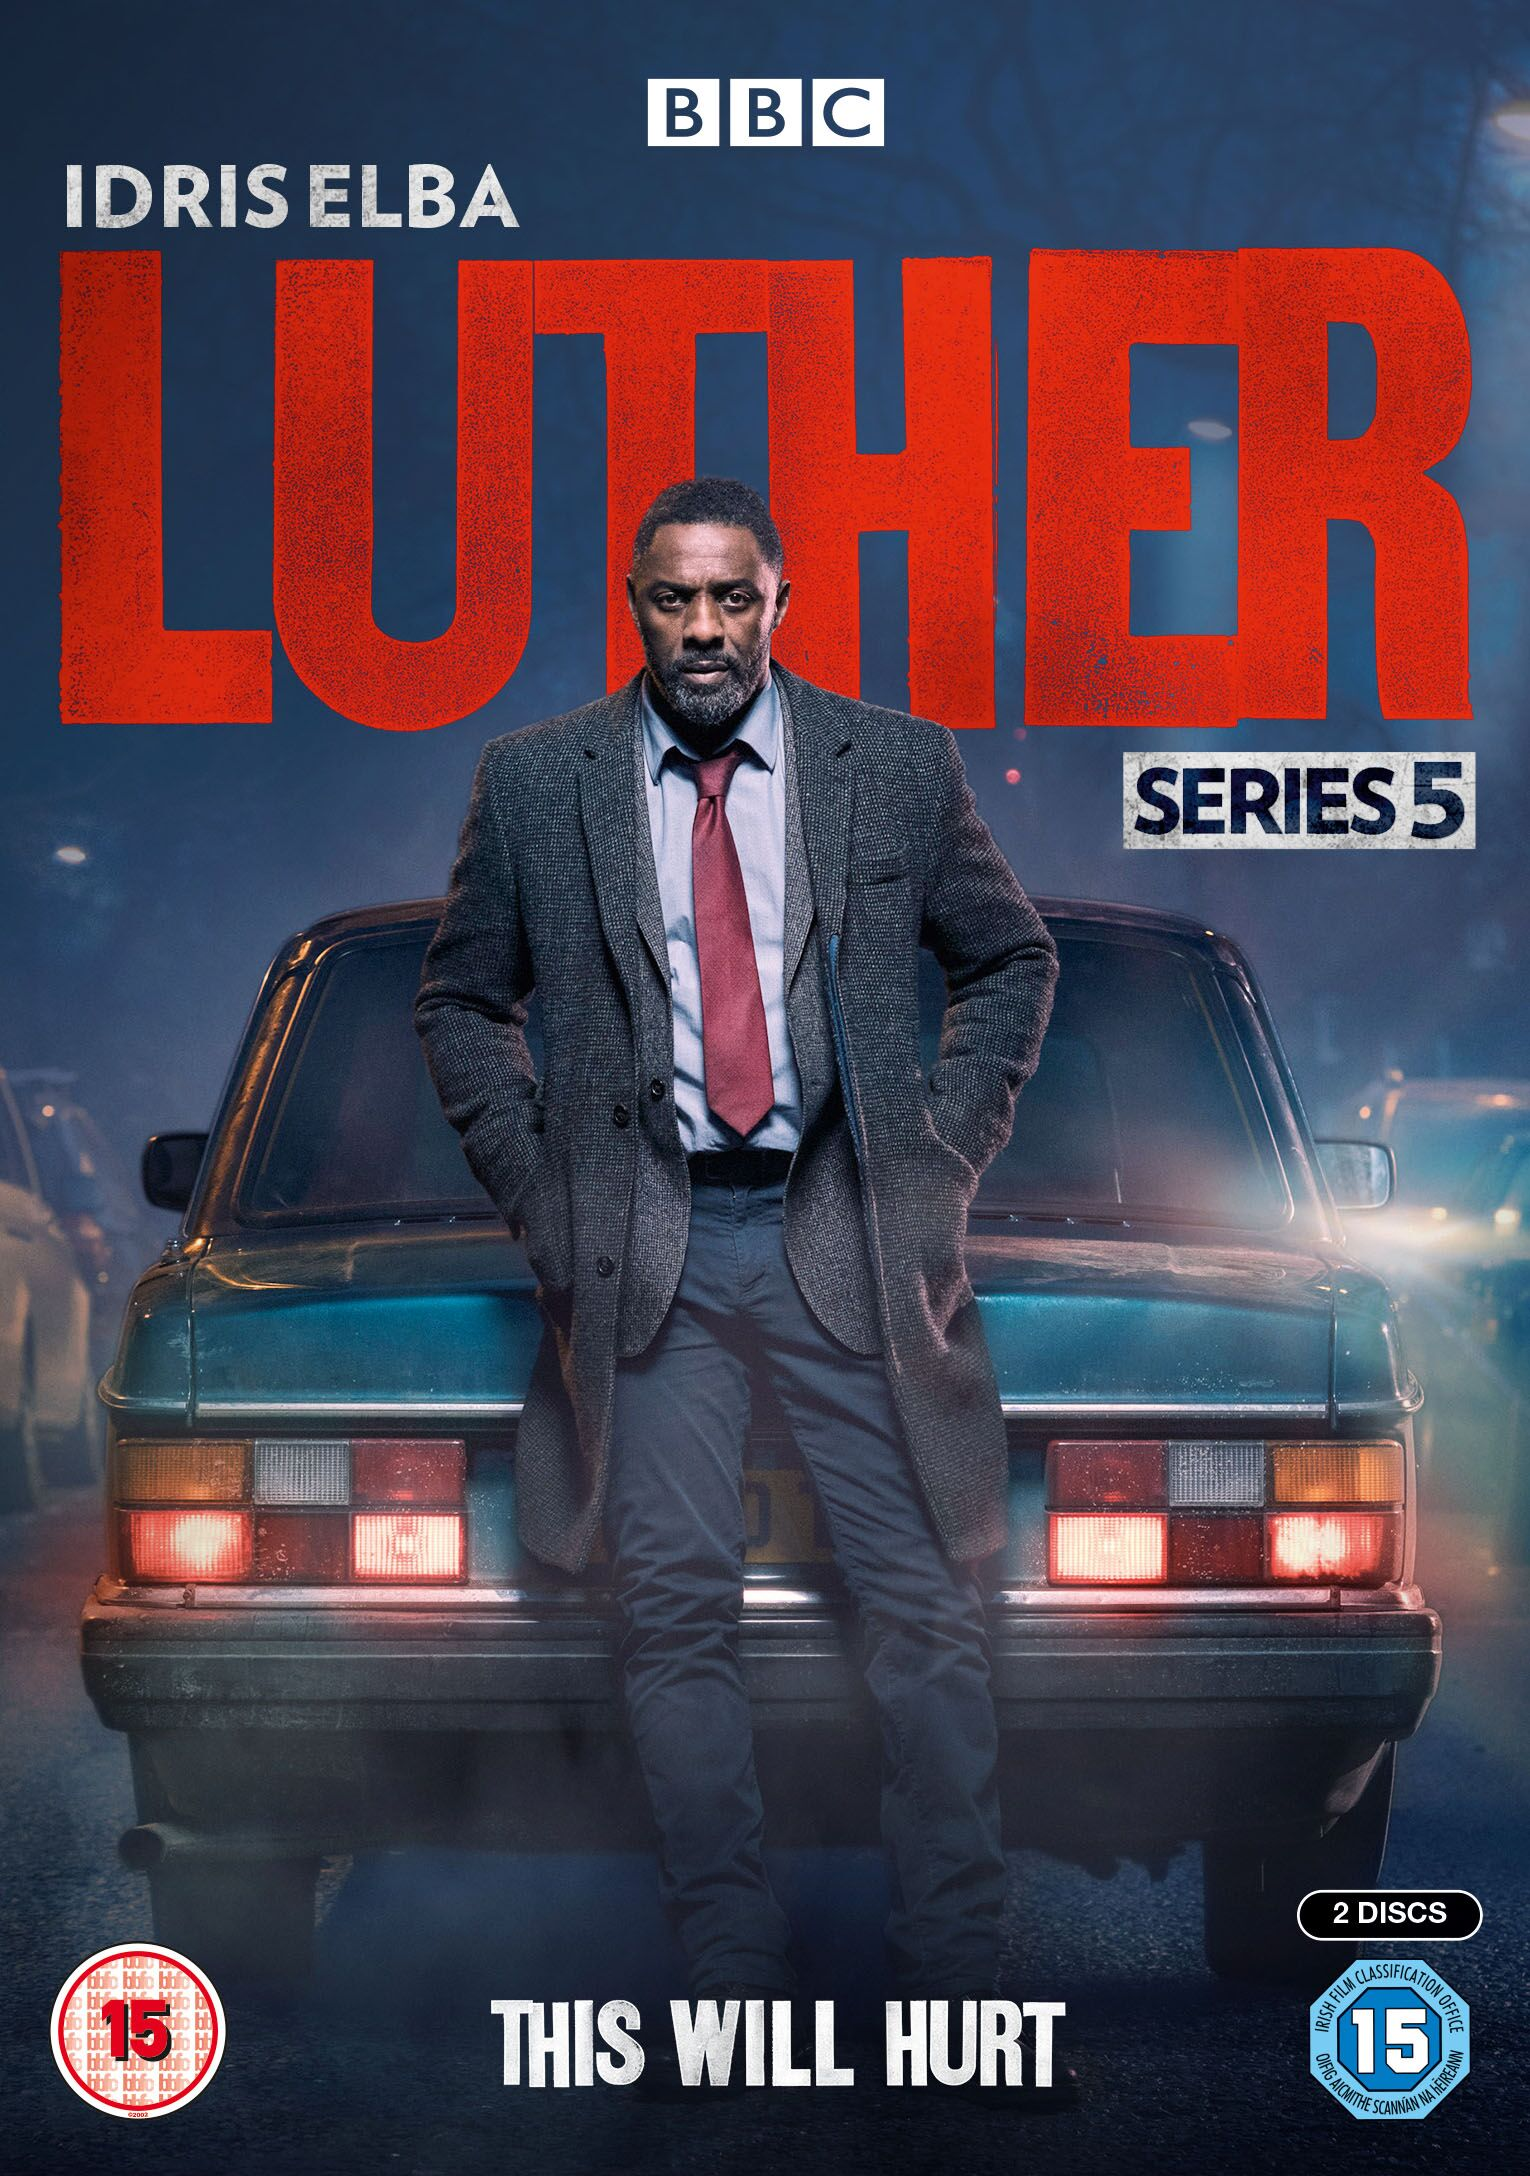 LUTHER SERIES 5 DVD